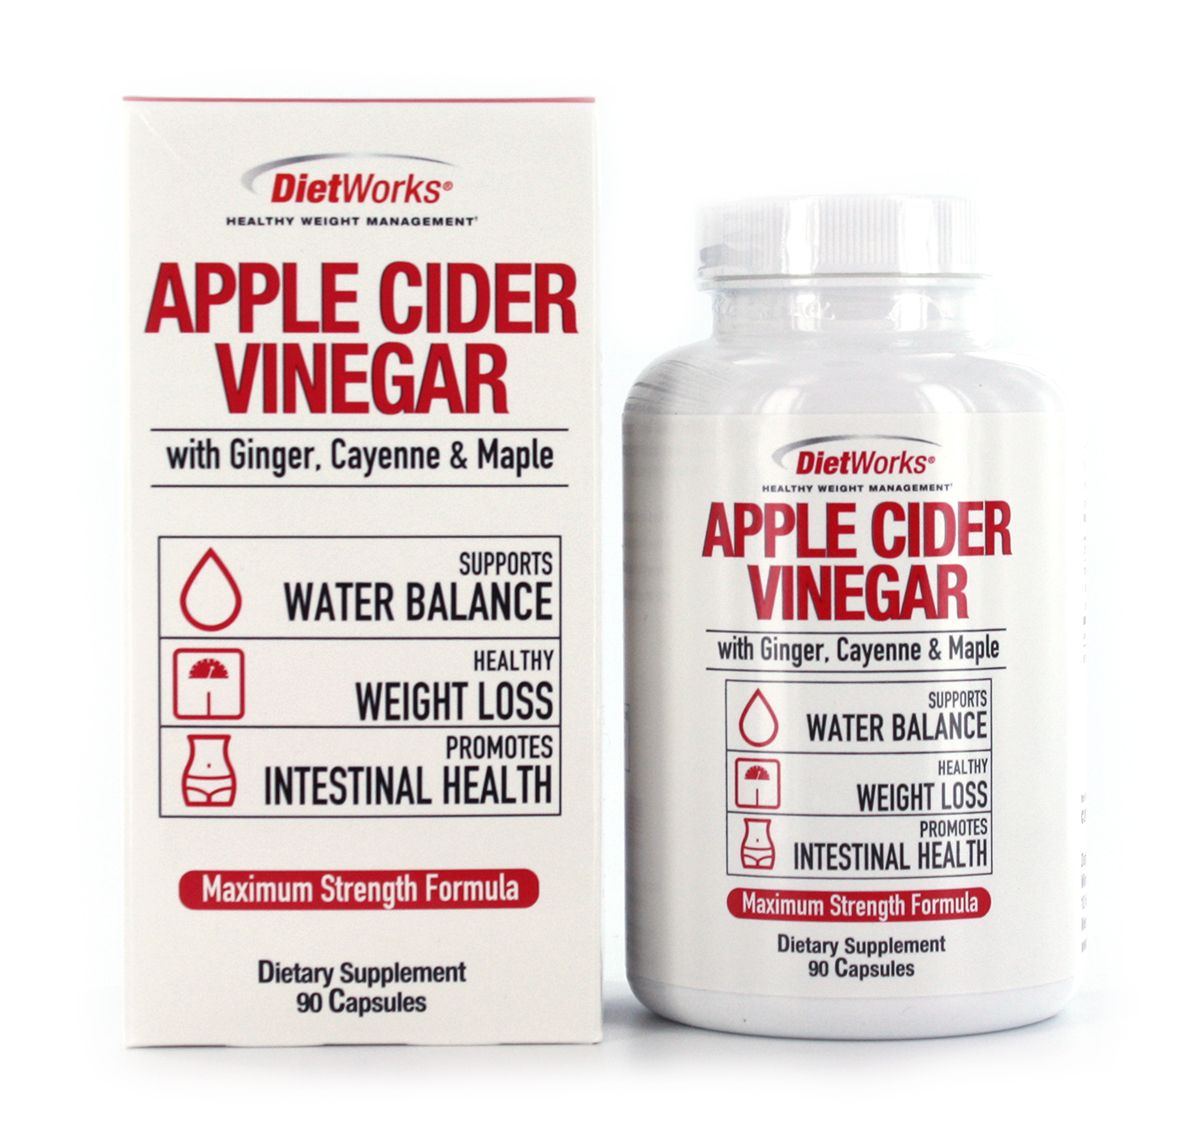 DietWorks Apple Cider Vinegar Dietary Supplement, 90